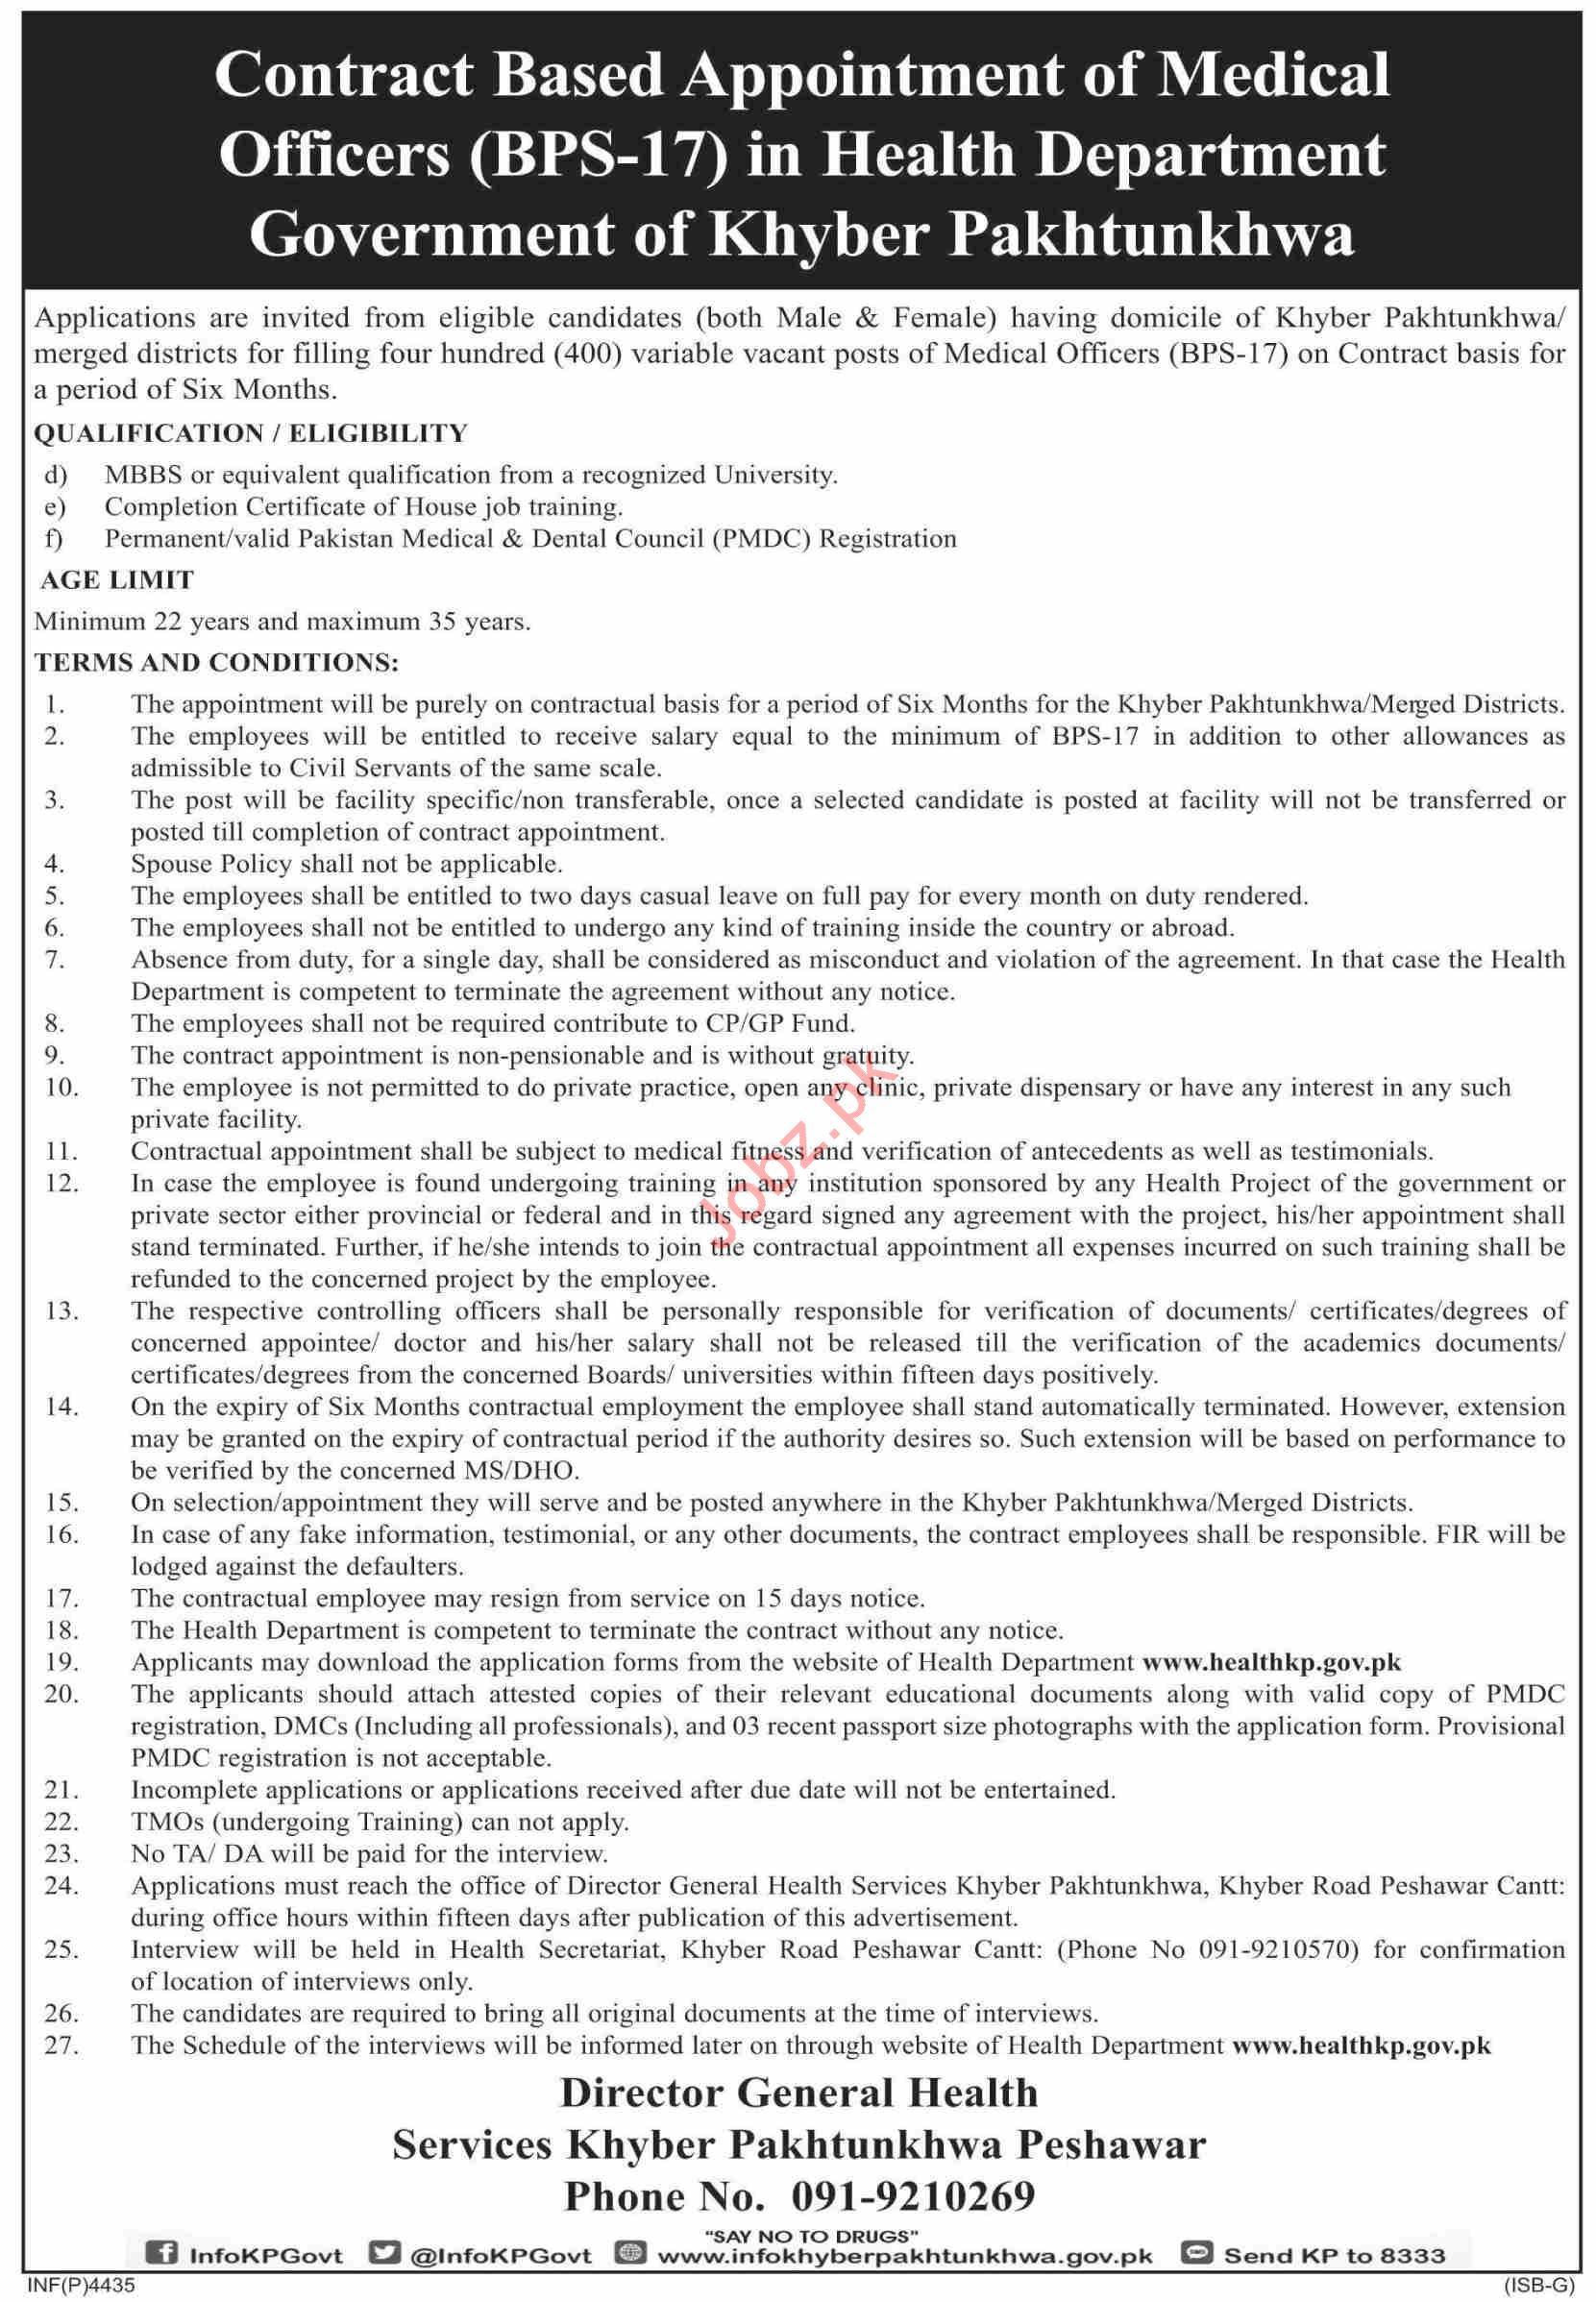 KP Health Department Jobs 2019 for Medical Officers